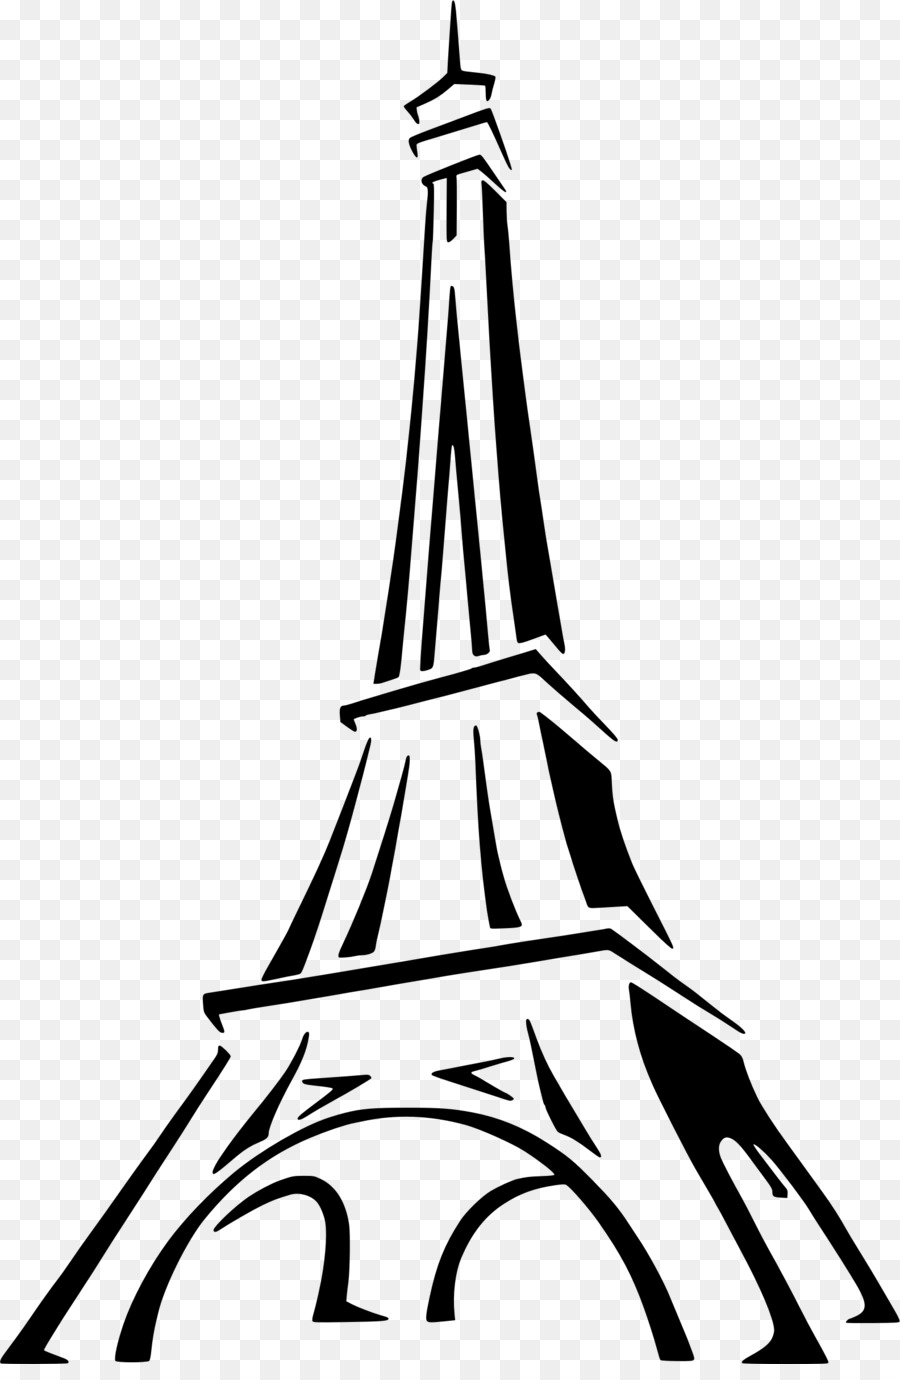 drawing of the eiffel tower eiffel tower outline png eiffel tower cute drawing tower eiffel of drawing the